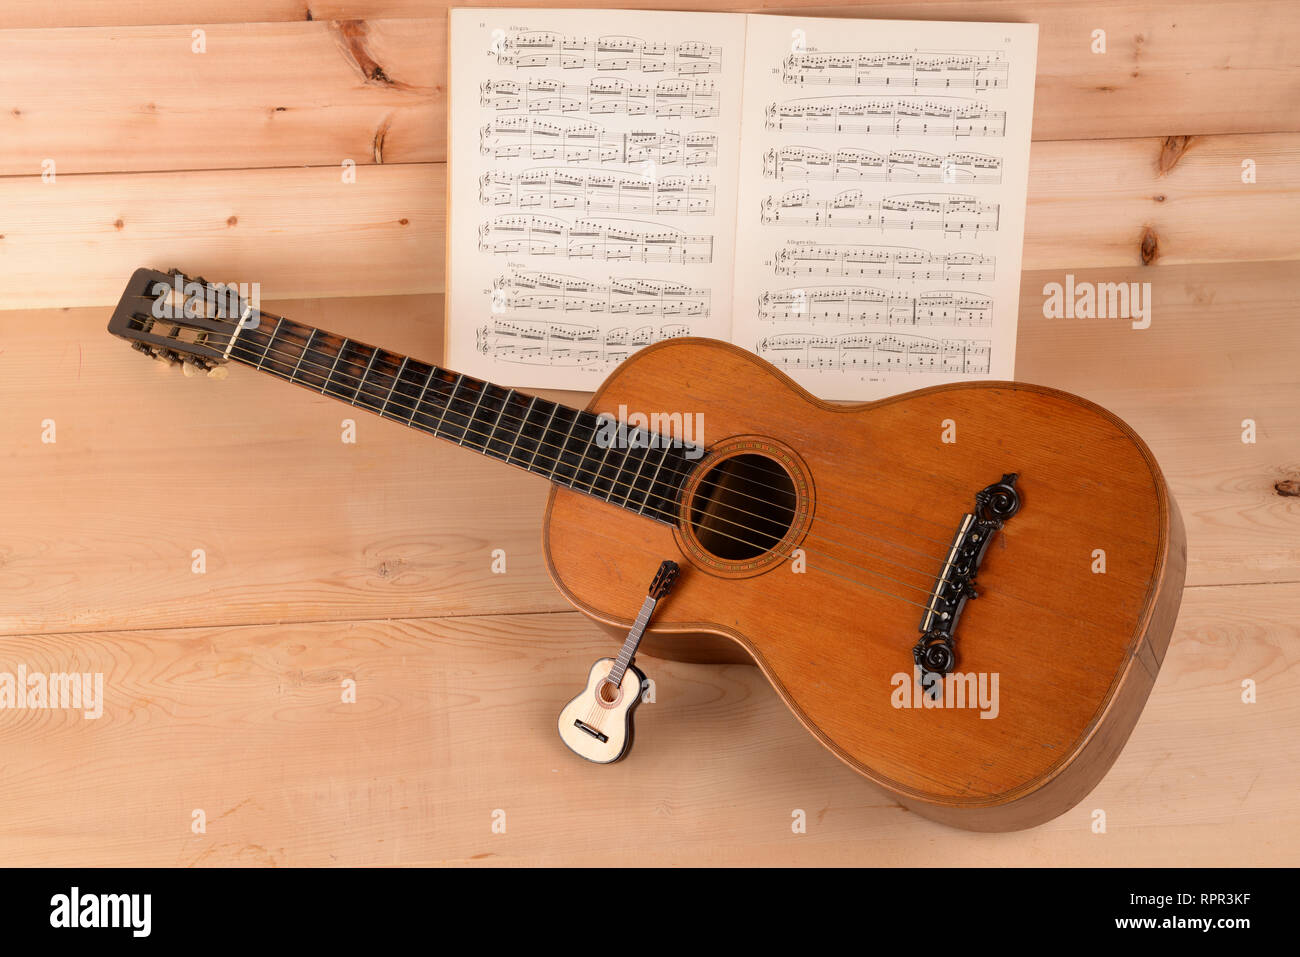 musical instruments, large and small guitar - Stock Image